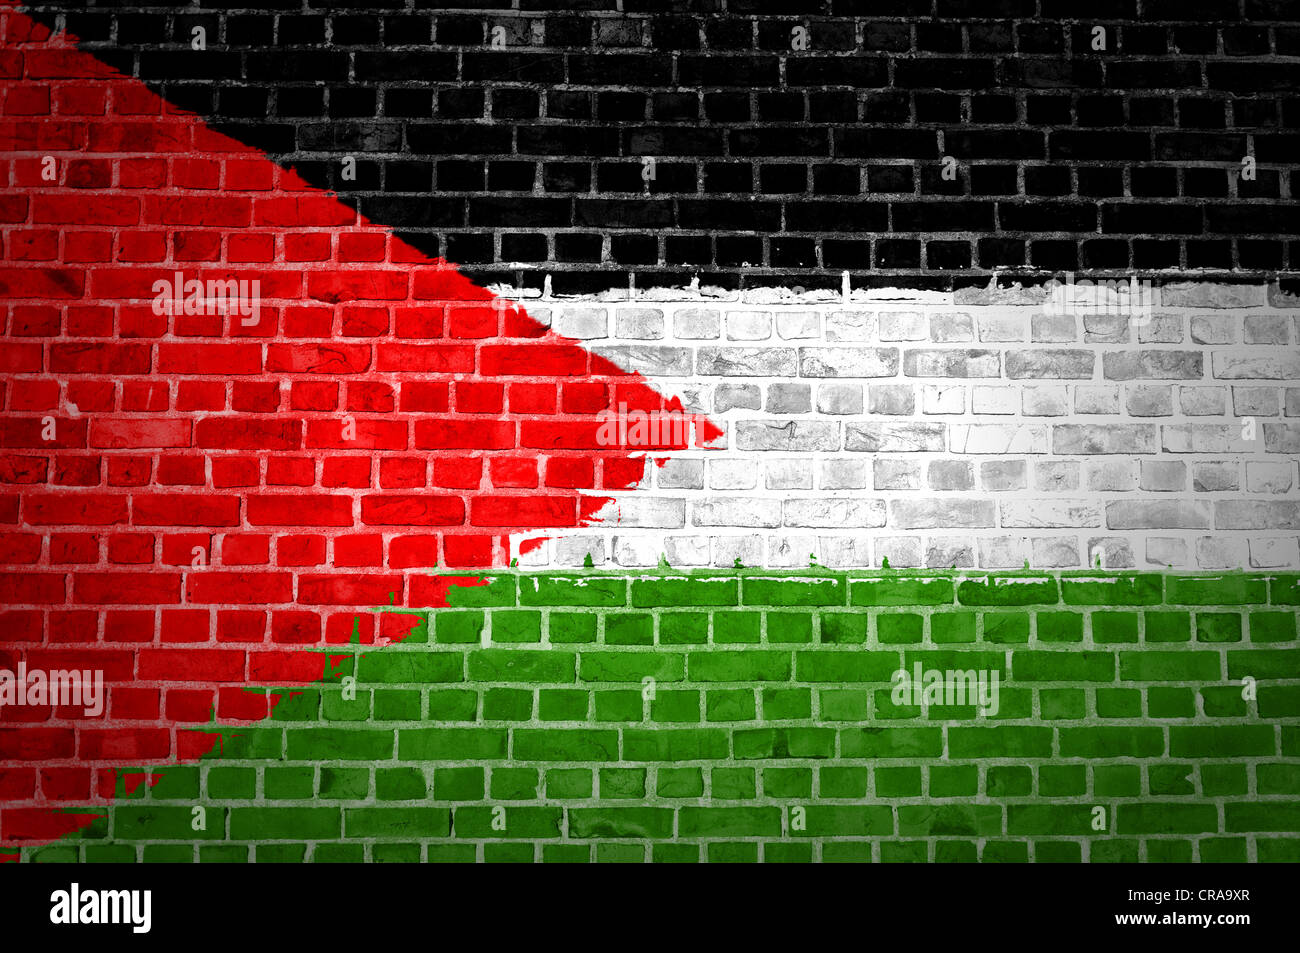 palestine flag stock photos palestine flag stock images alamy